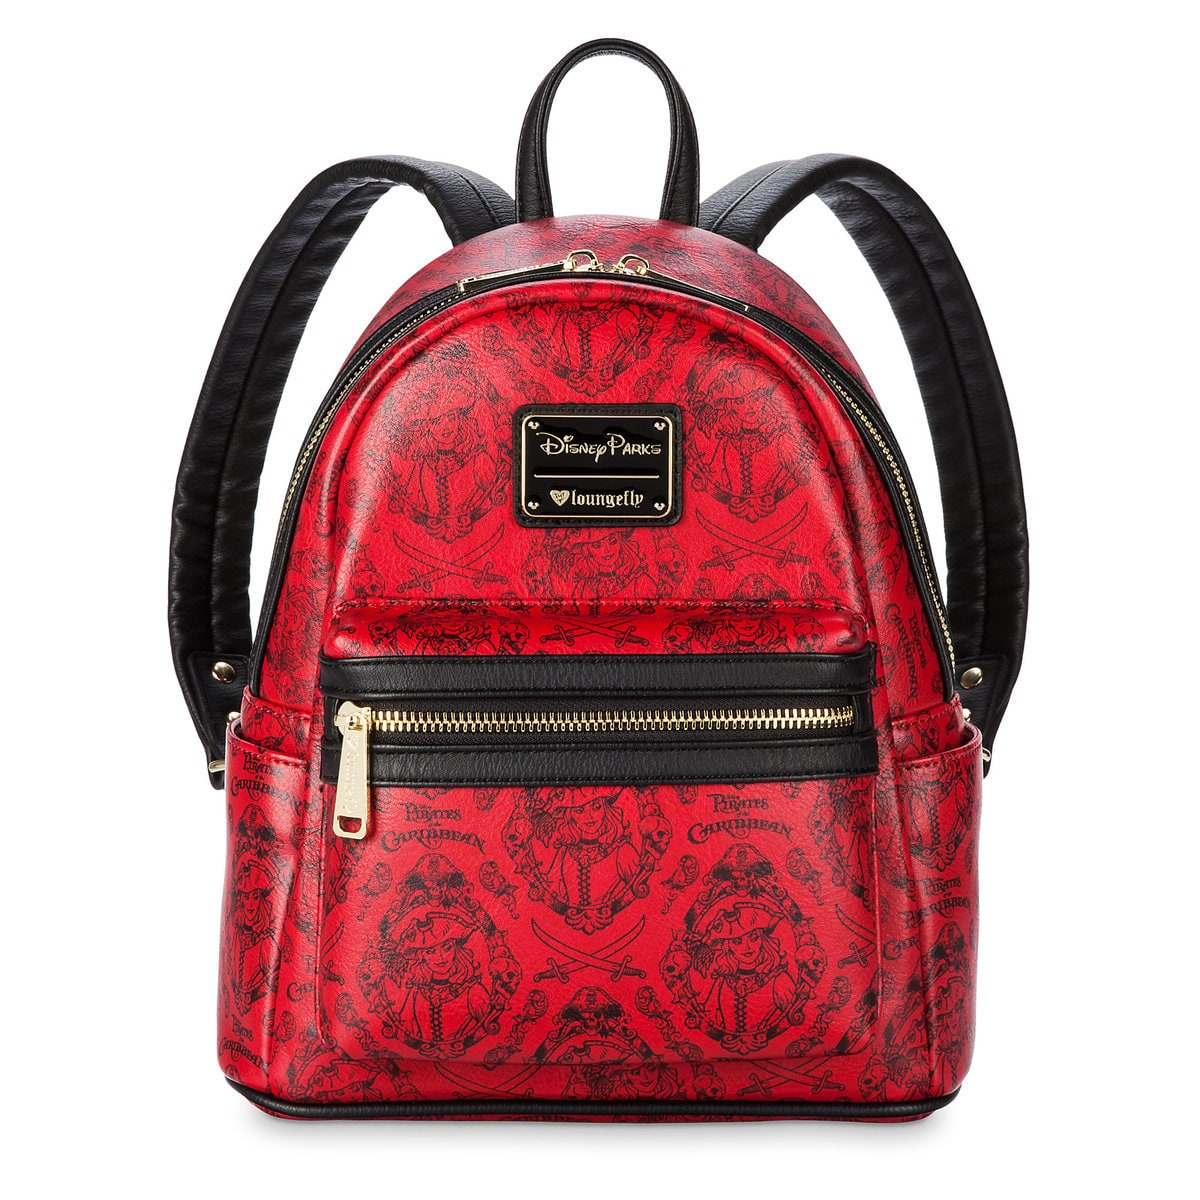 7ee55537f Product Image of Redd Backpack by Loungefly - Pirates of the Caribbean # 1